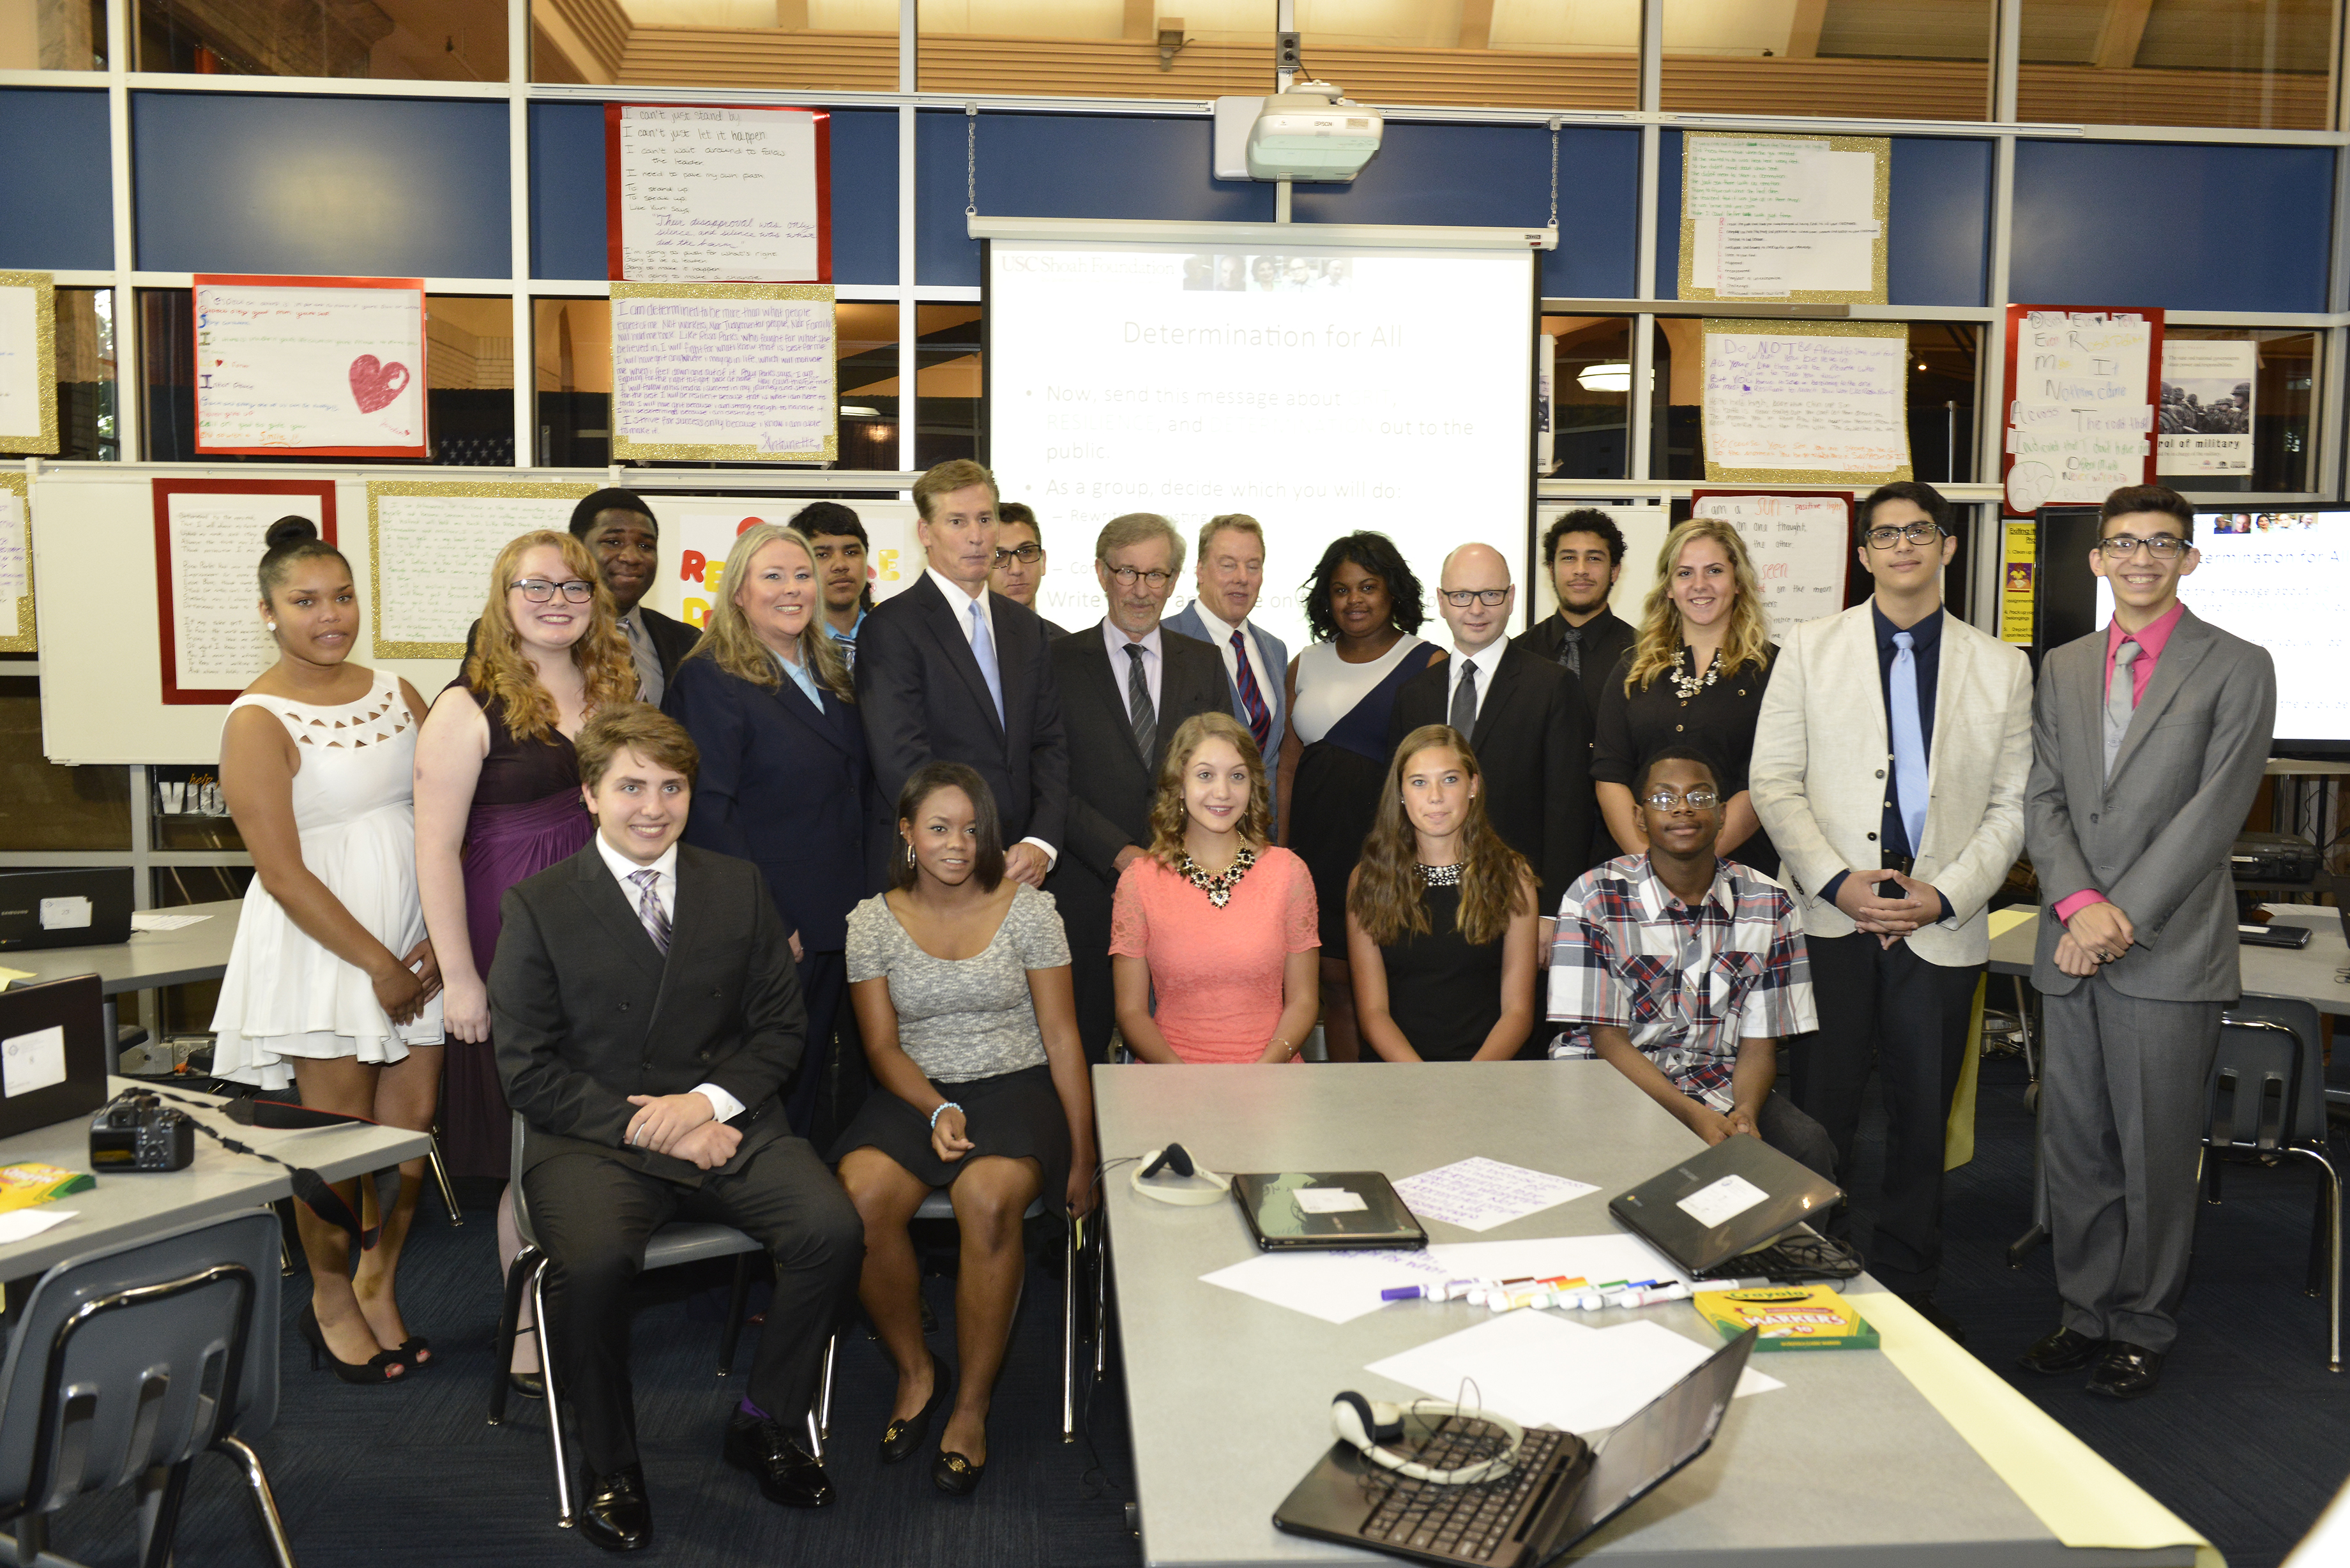 IWitness Detroit students with Bill Goodwyn of Discovery Education, Ford Motor Company Executive Director Bill Ford, USC Shoah Foundation founder Steven Spielberg and Executive Director Stephen Smith